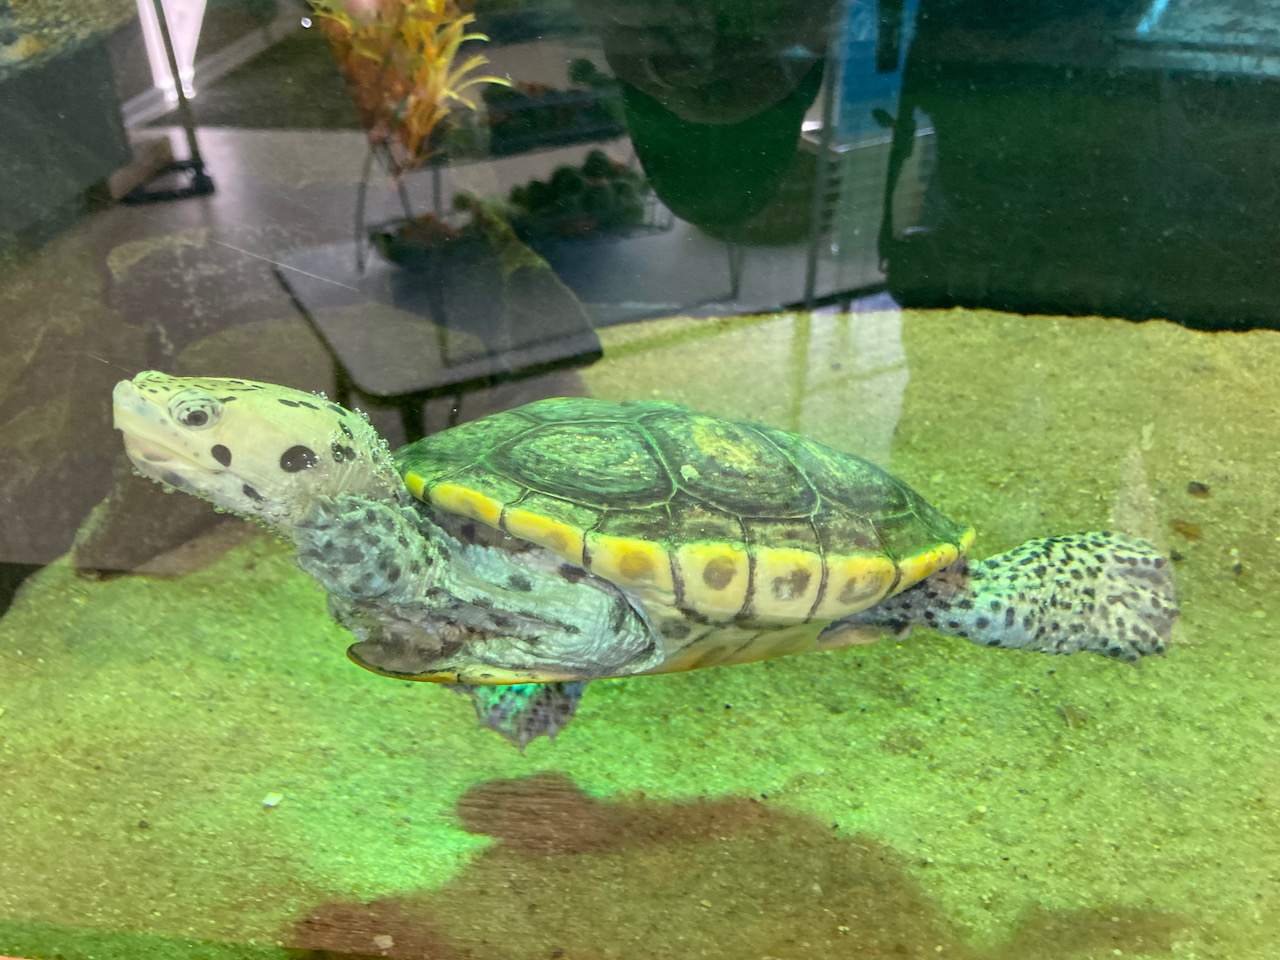 Turtle swimming in aquarium tank.